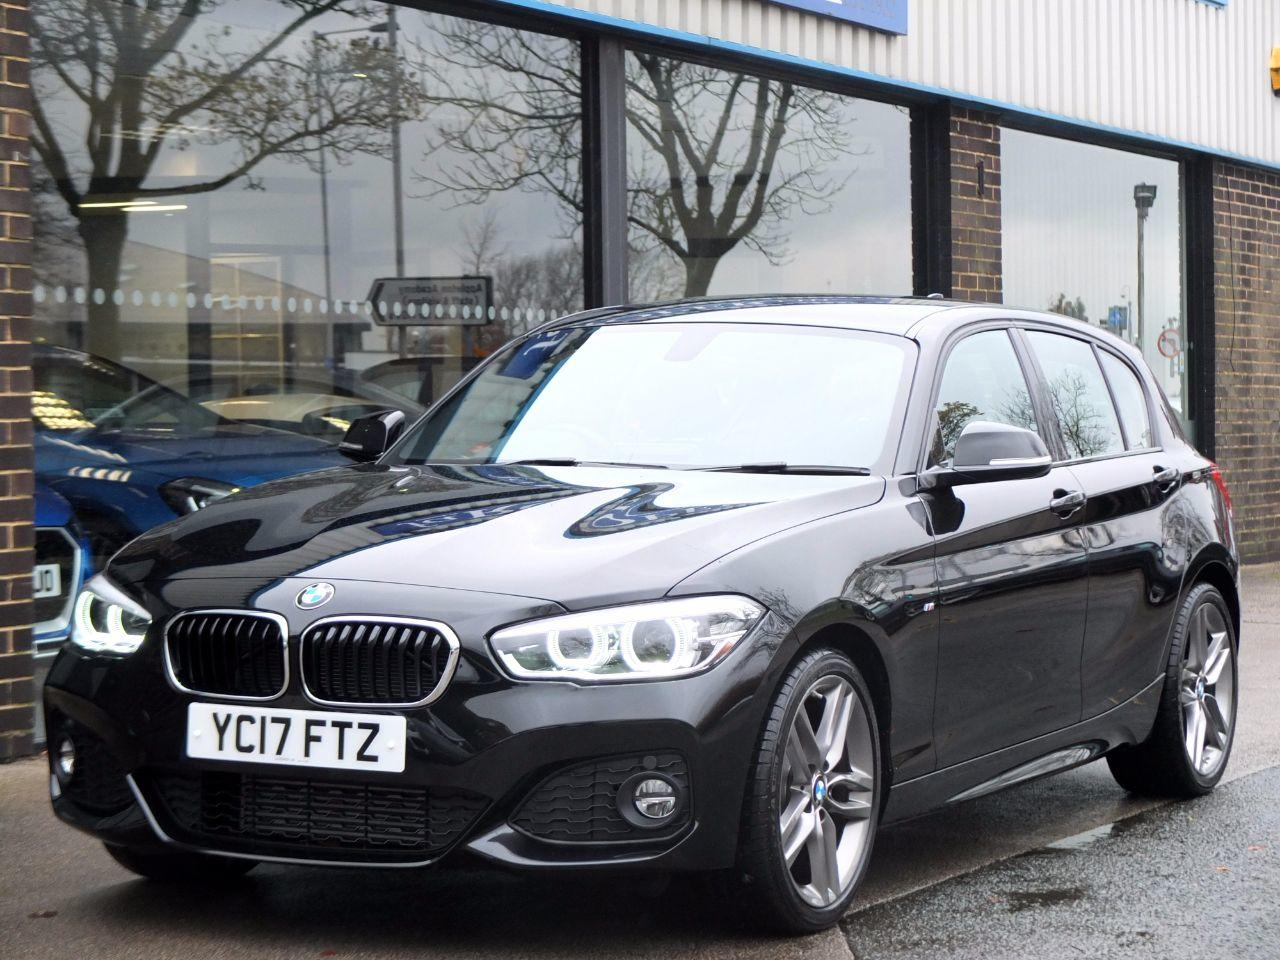 BMW 1 Series 2.0 125D M Sport 5 door Auto 224bhp Hatchback Diesel Sapphire Black MetallicBMW 1 Series 2.0 125D M Sport 5 door Auto 224bhp Hatchback Diesel Sapphire Black Metallic at fa Roper Ltd Bradford